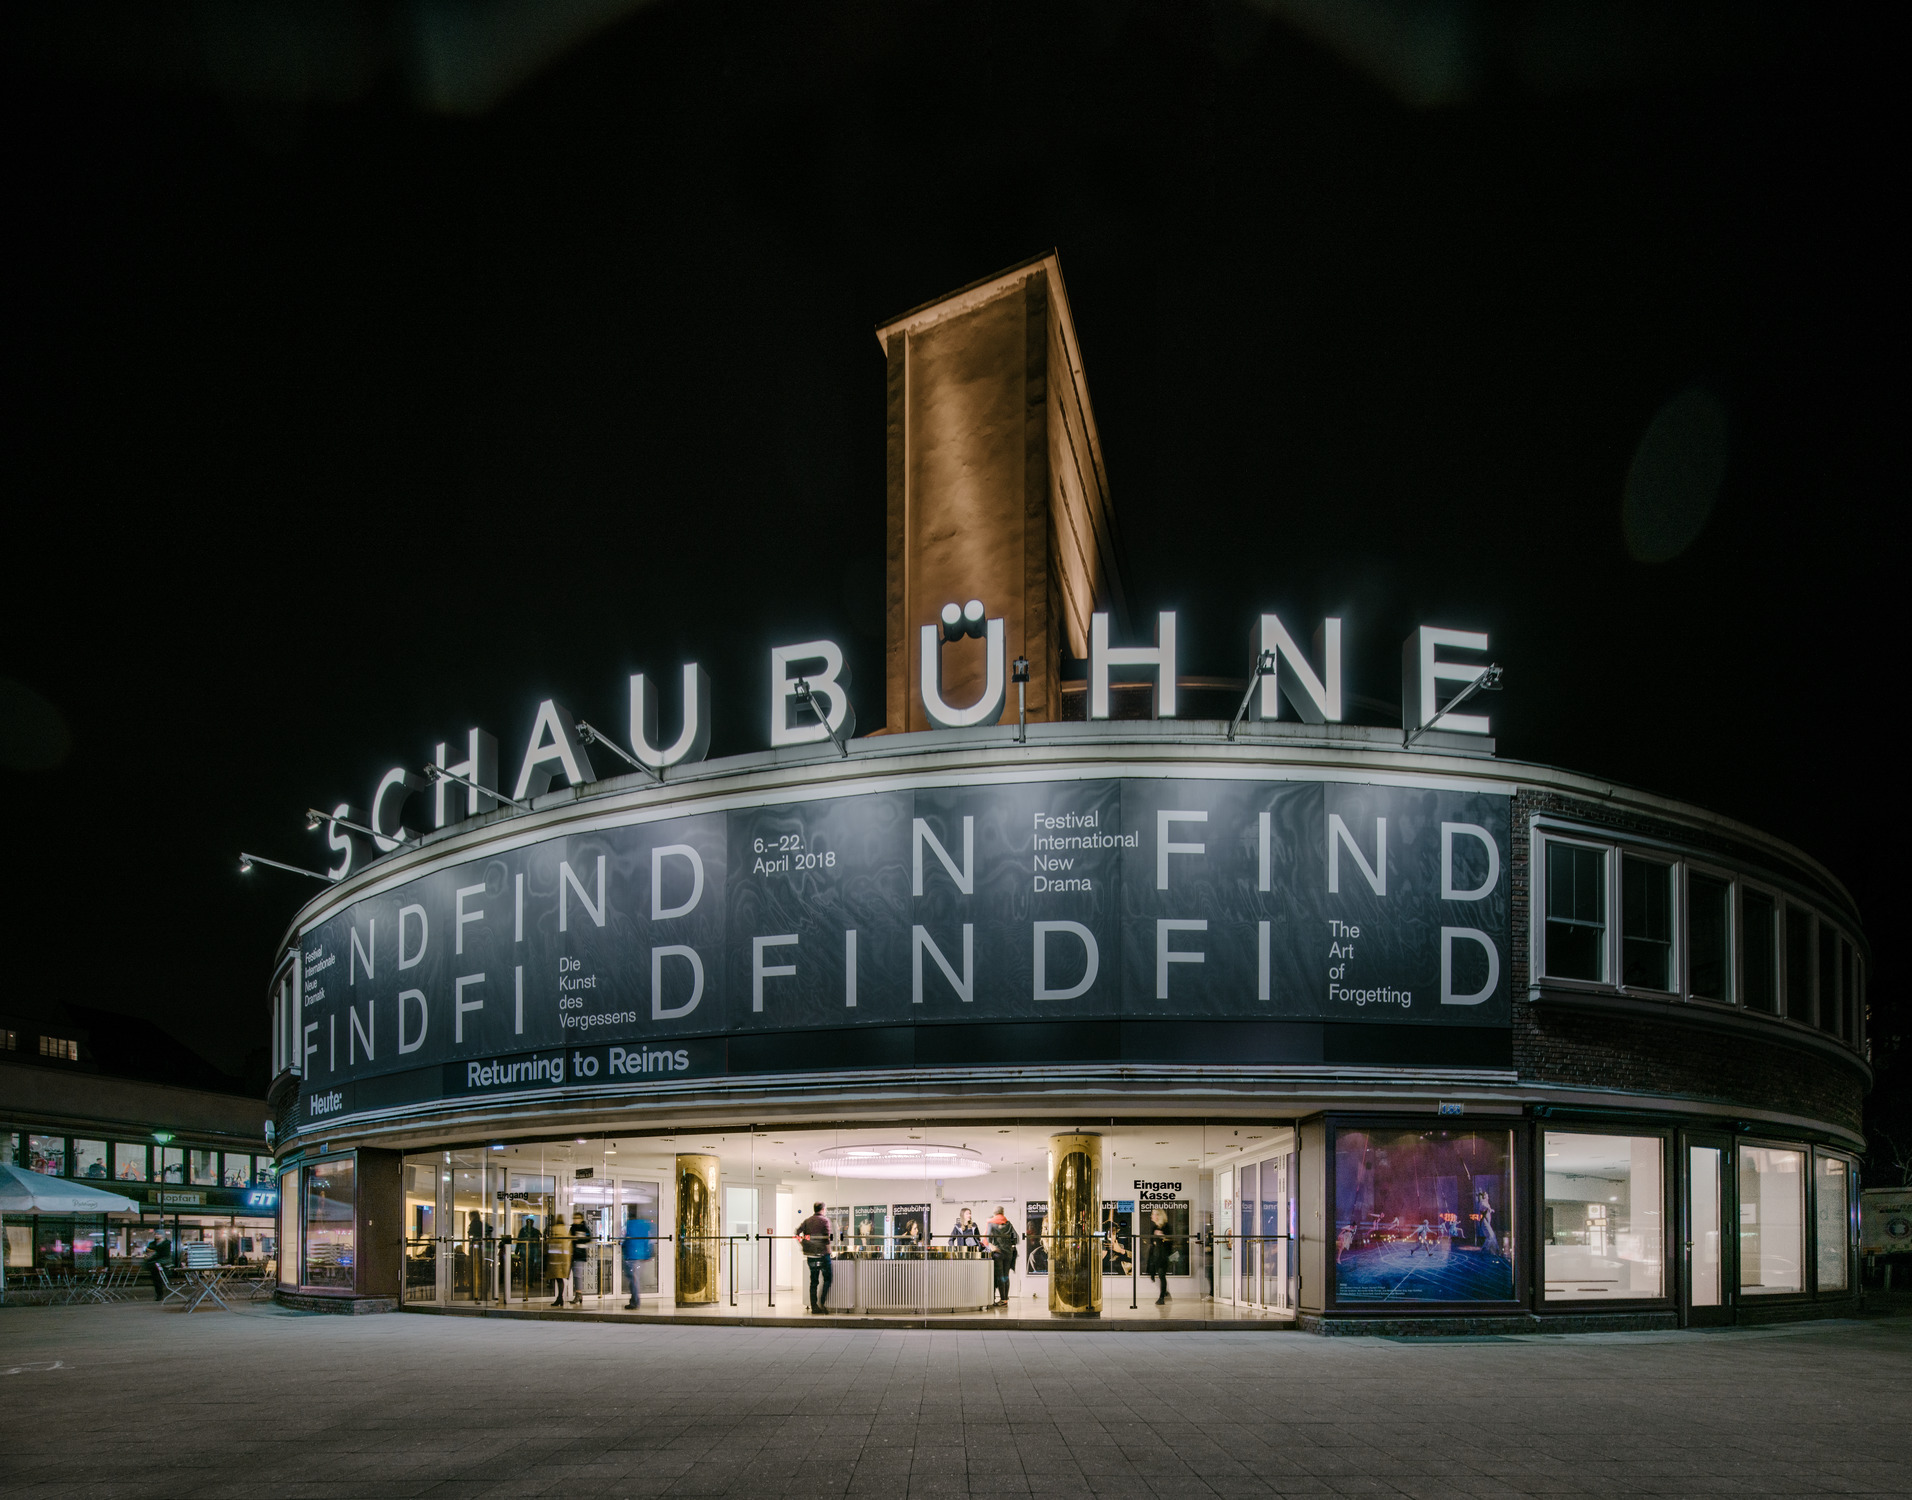 Renovation of reception area of the Schaubühne Berlin by Barkow Leibinger. Photography by Simon Menges